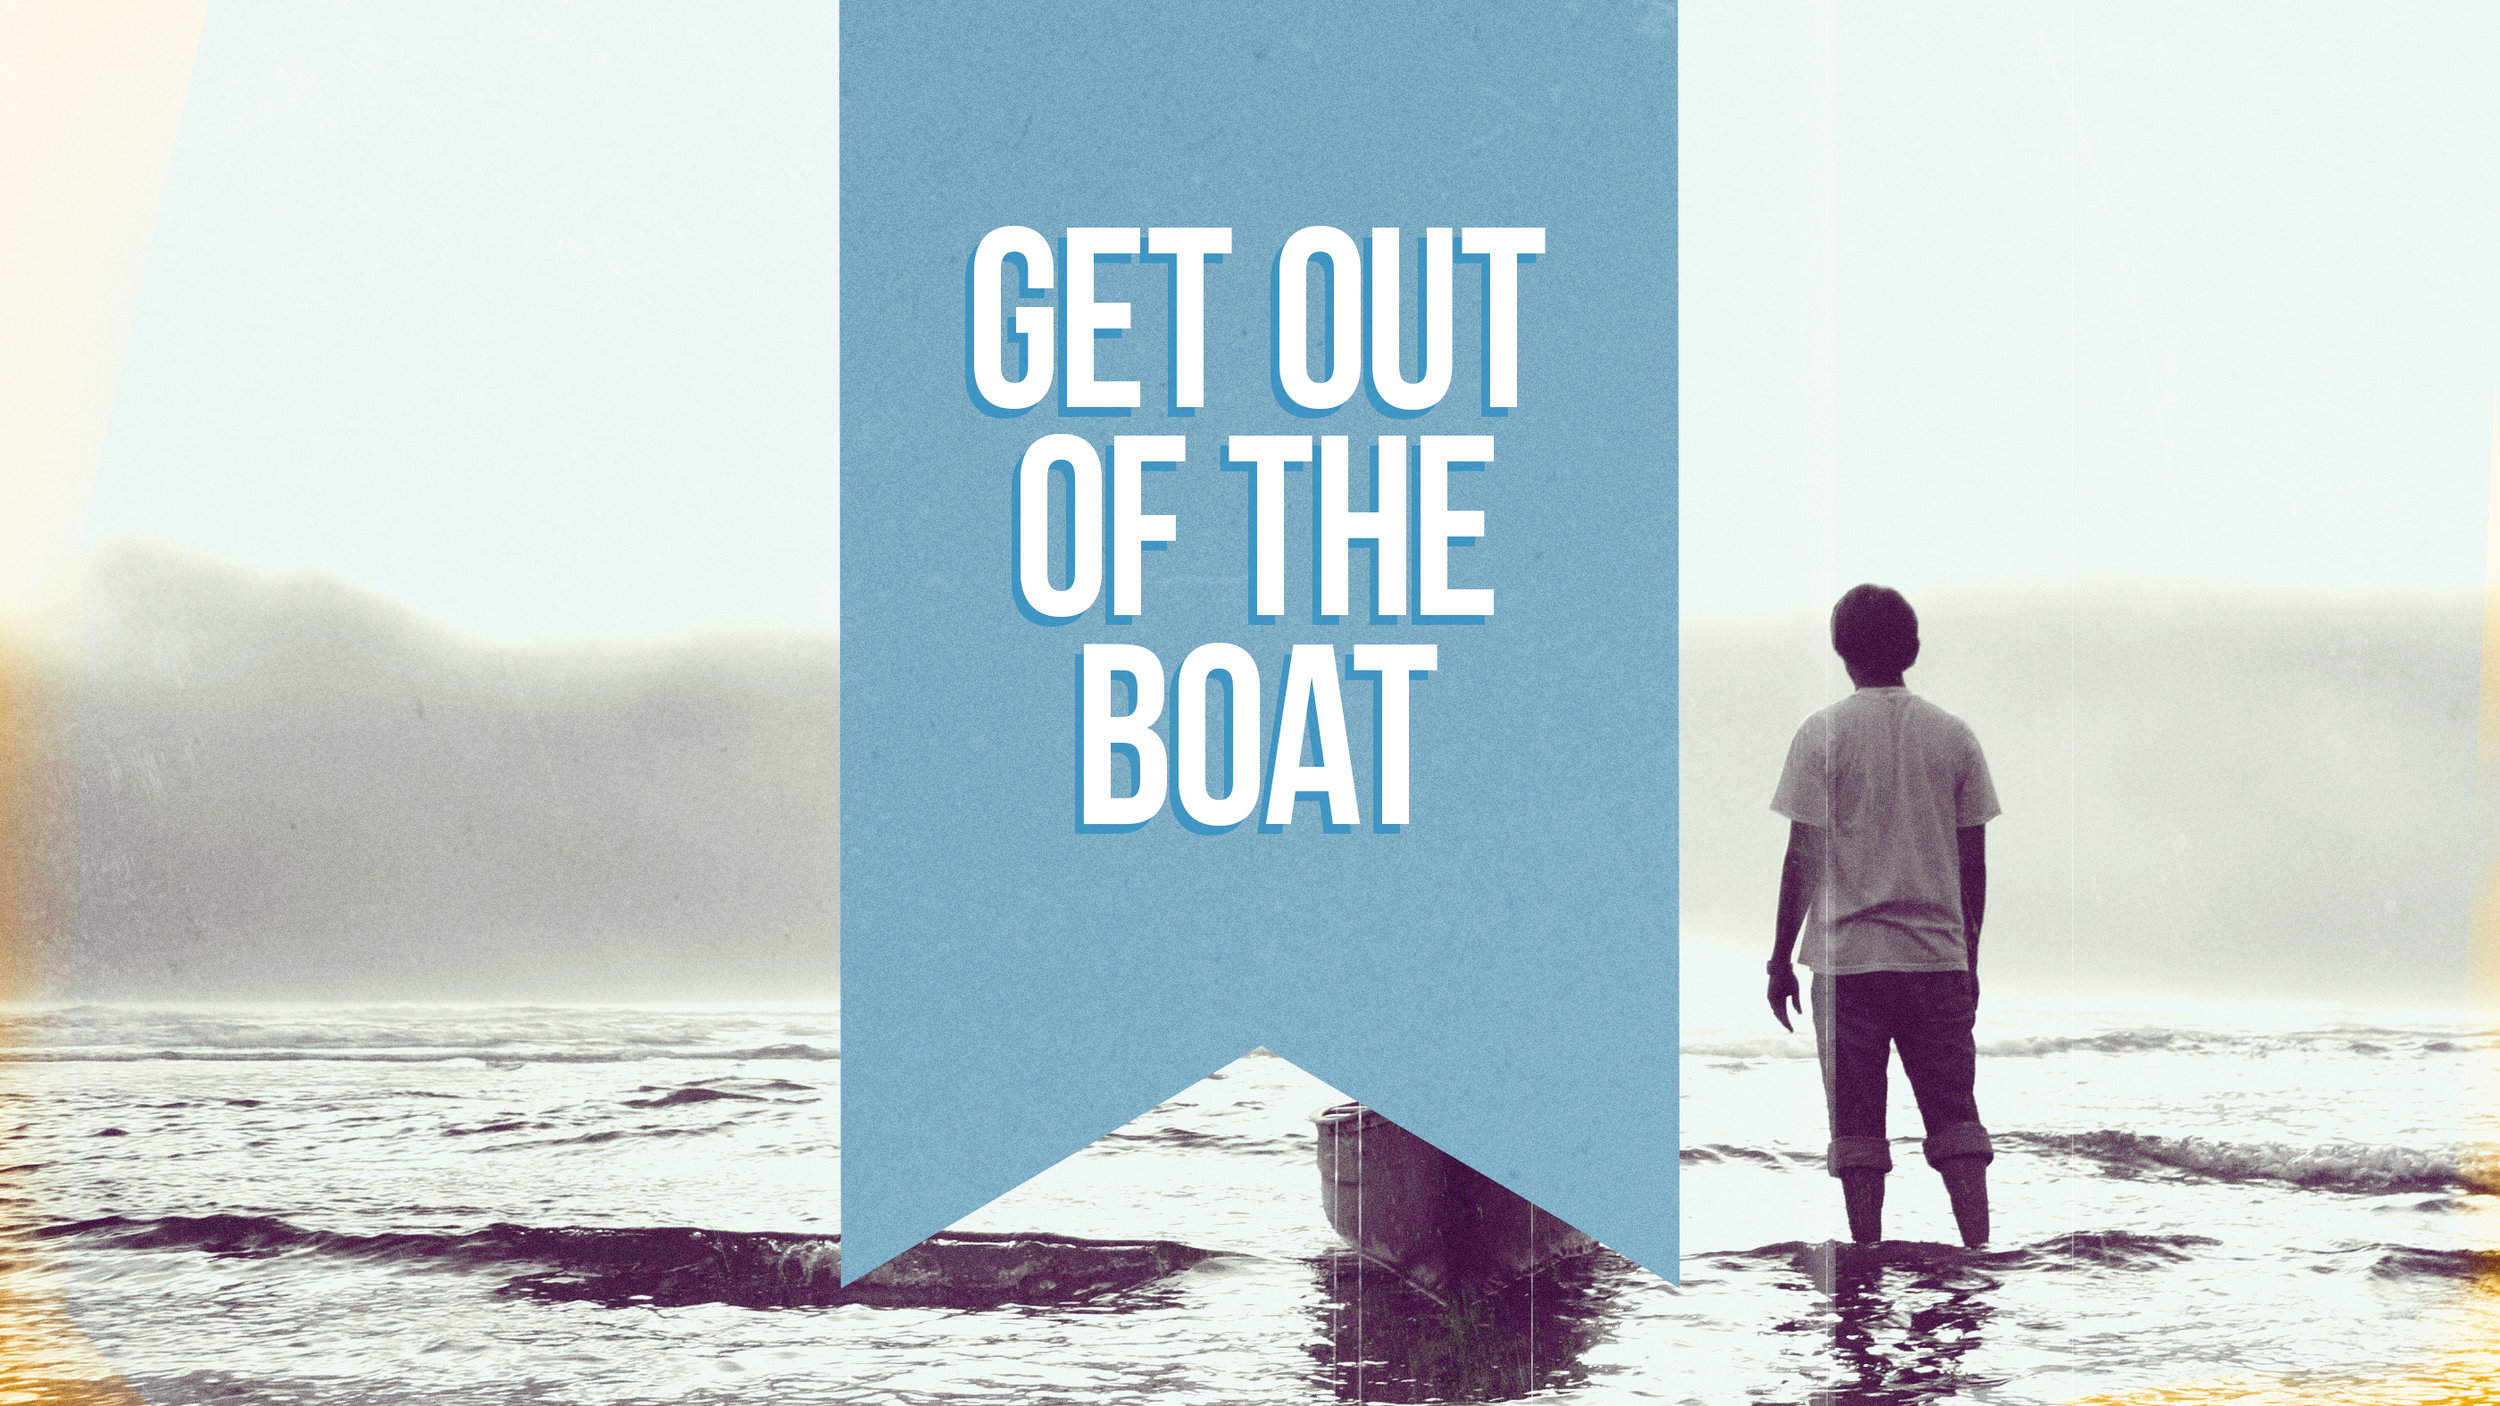 Get-Out-of-the-Boat.jpg